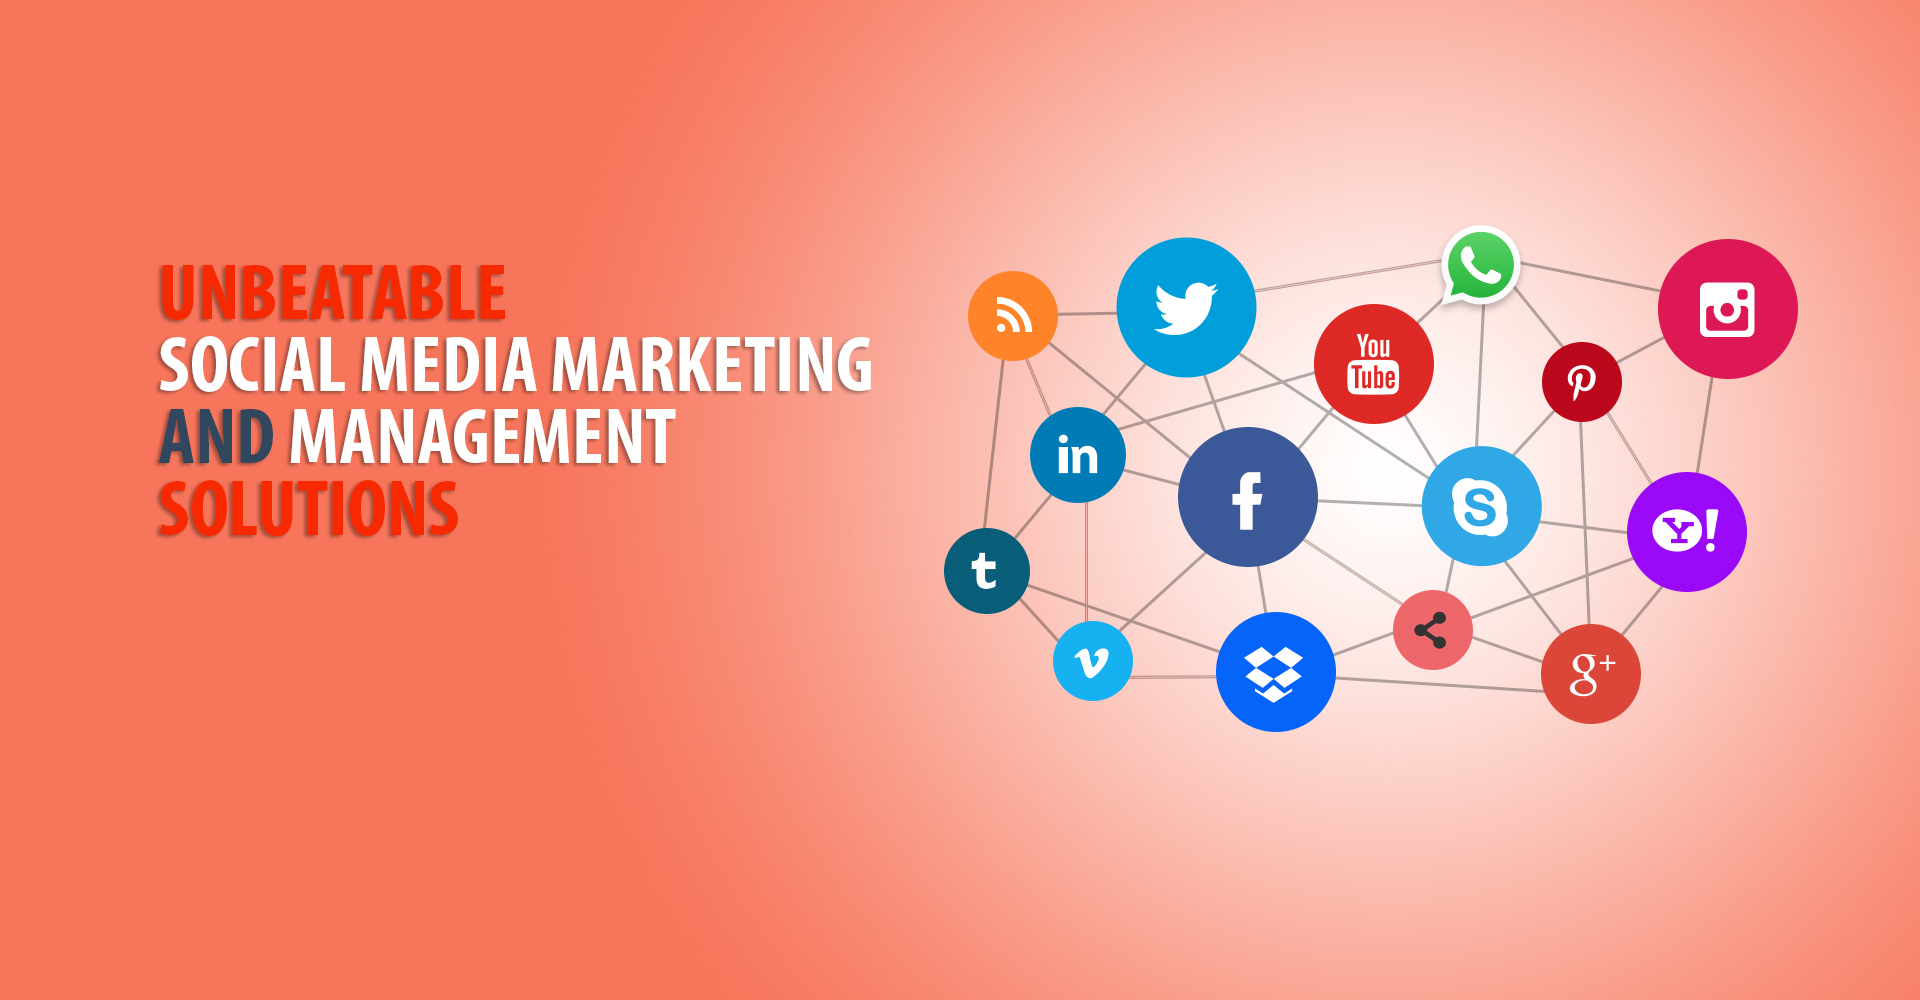 Unbeatable social media marketing and management